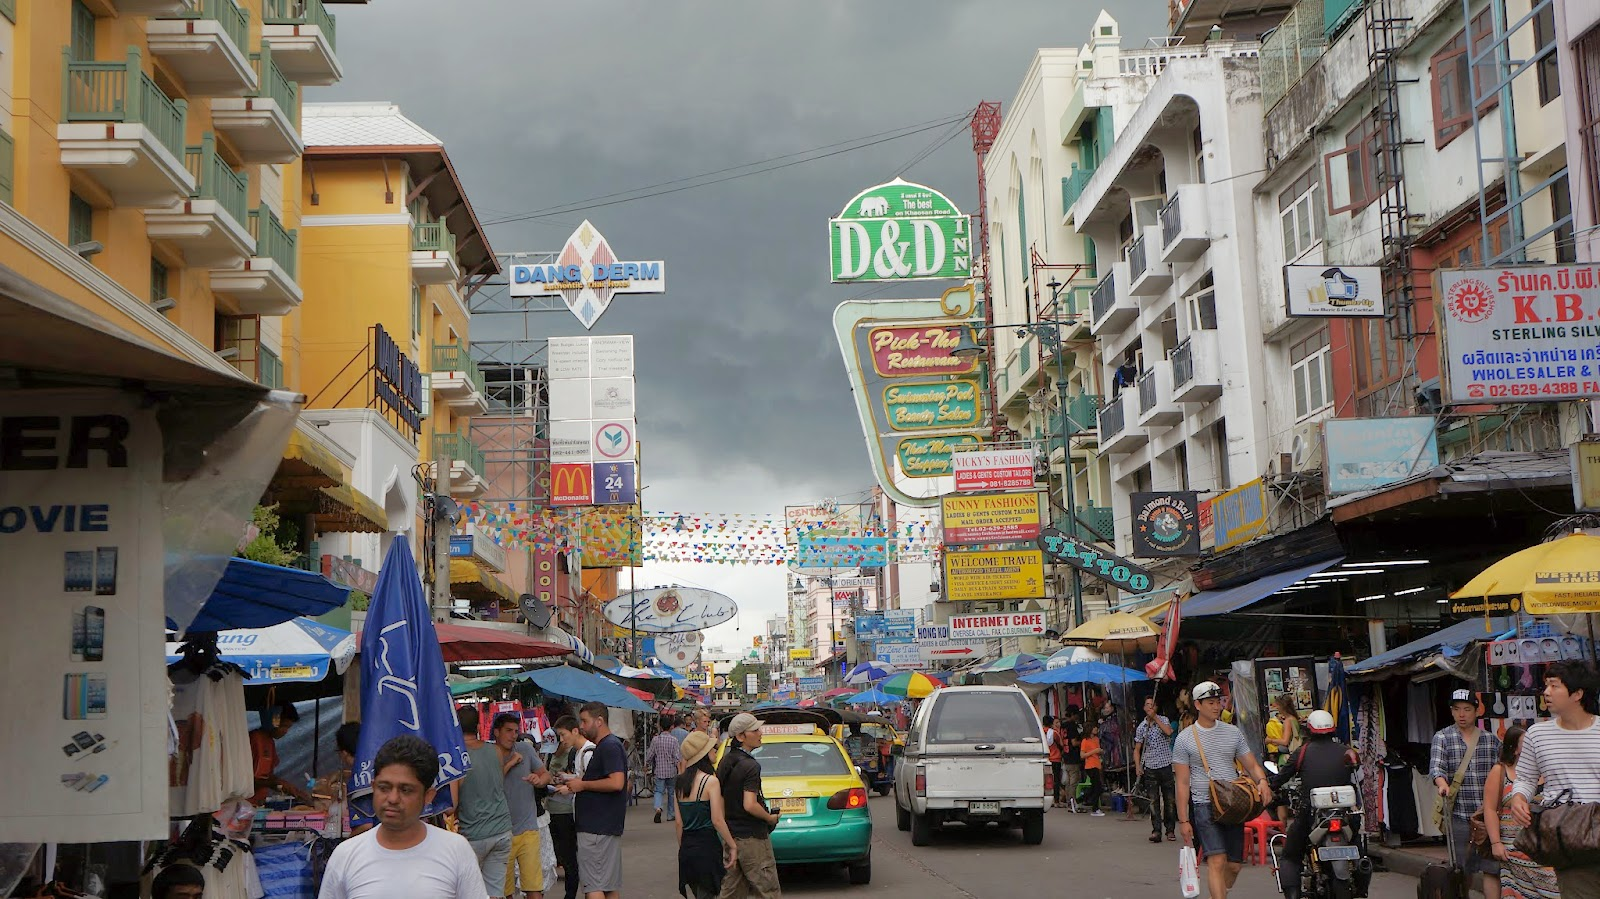 The world famous Khaosan Road, a mecca for backpackers from all around the world